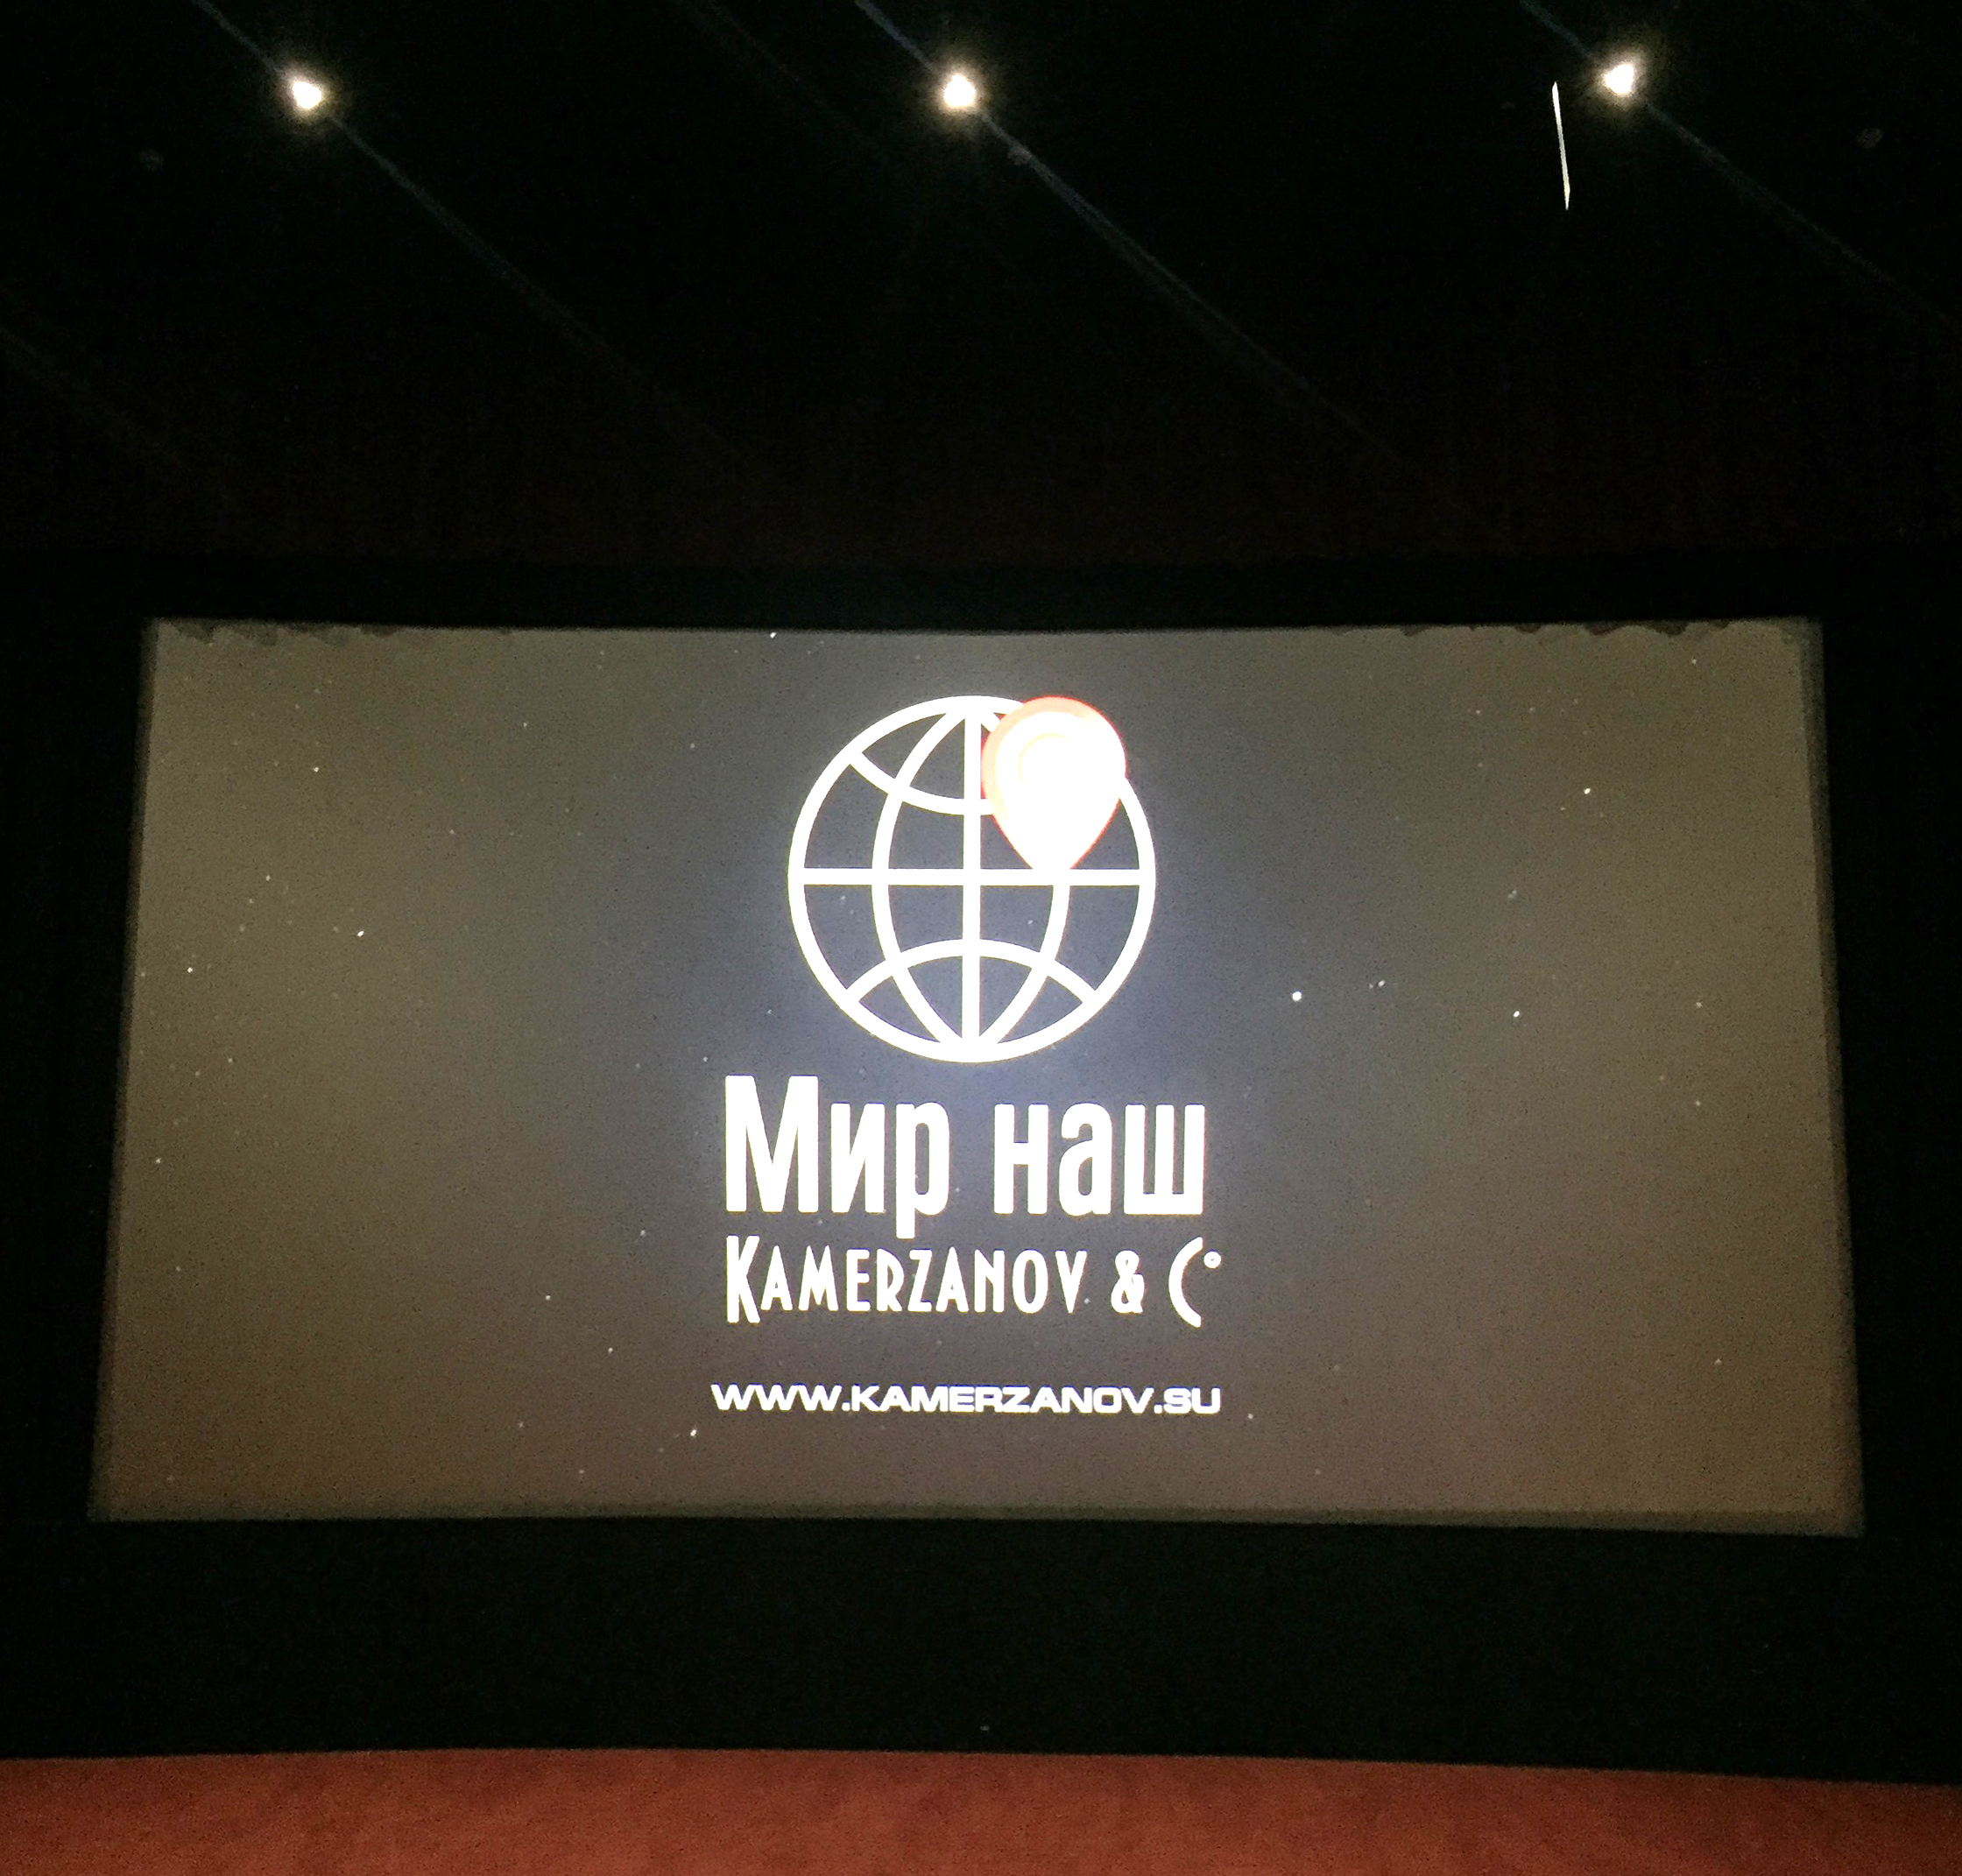 mirnash cinema screen